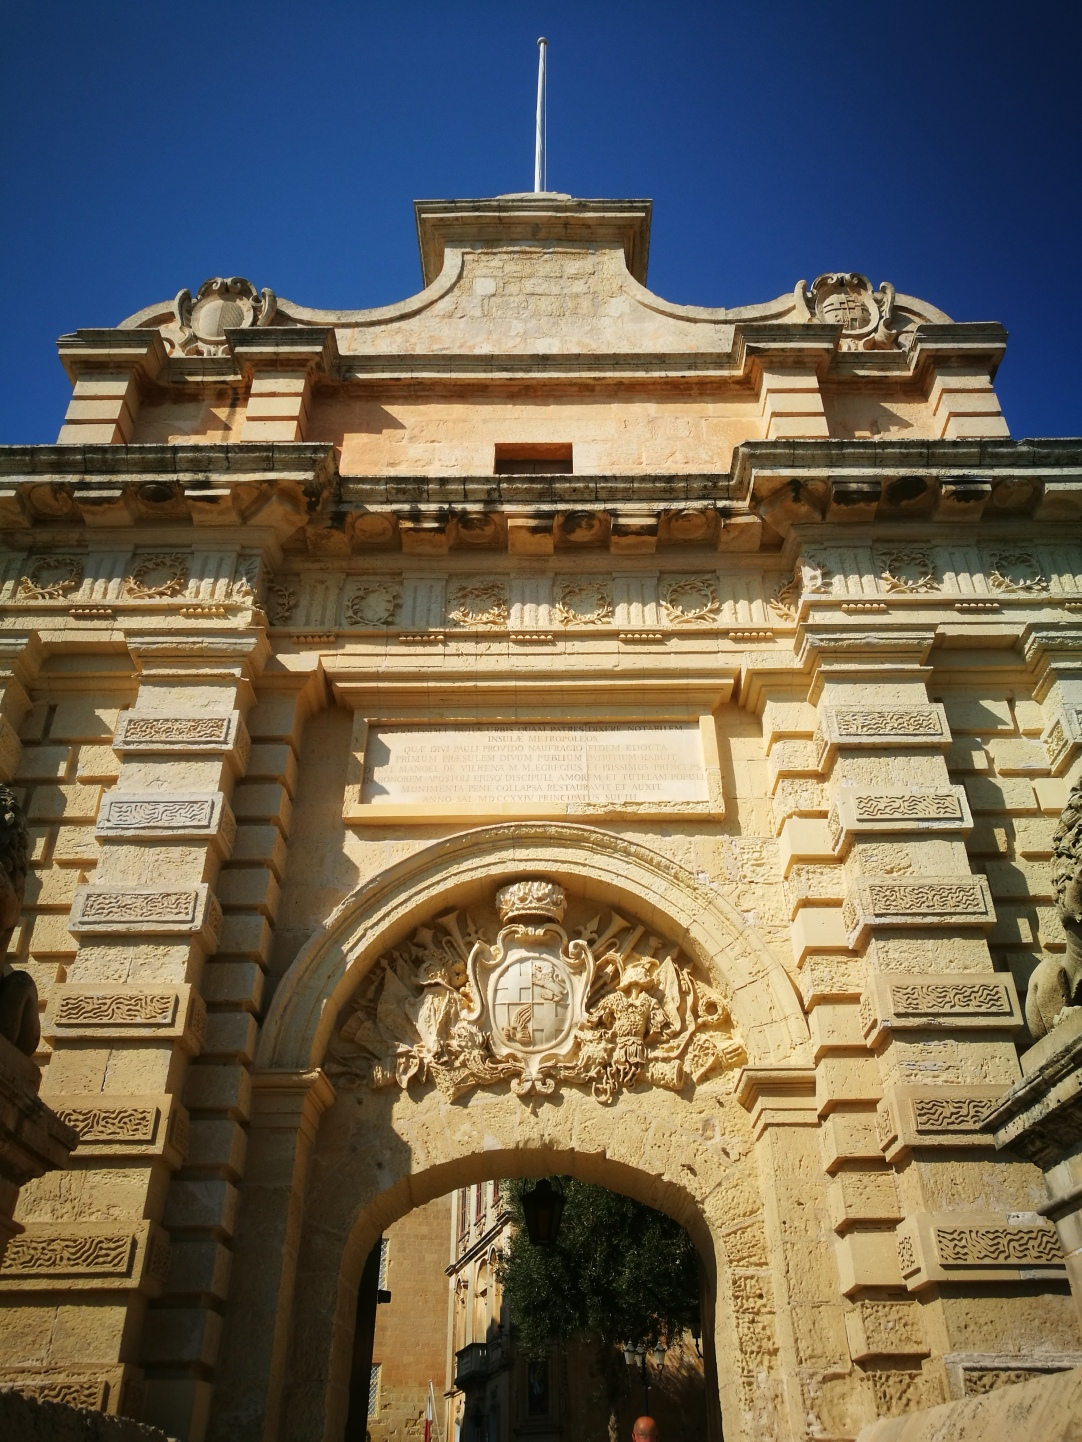 Mdina - The city of silence